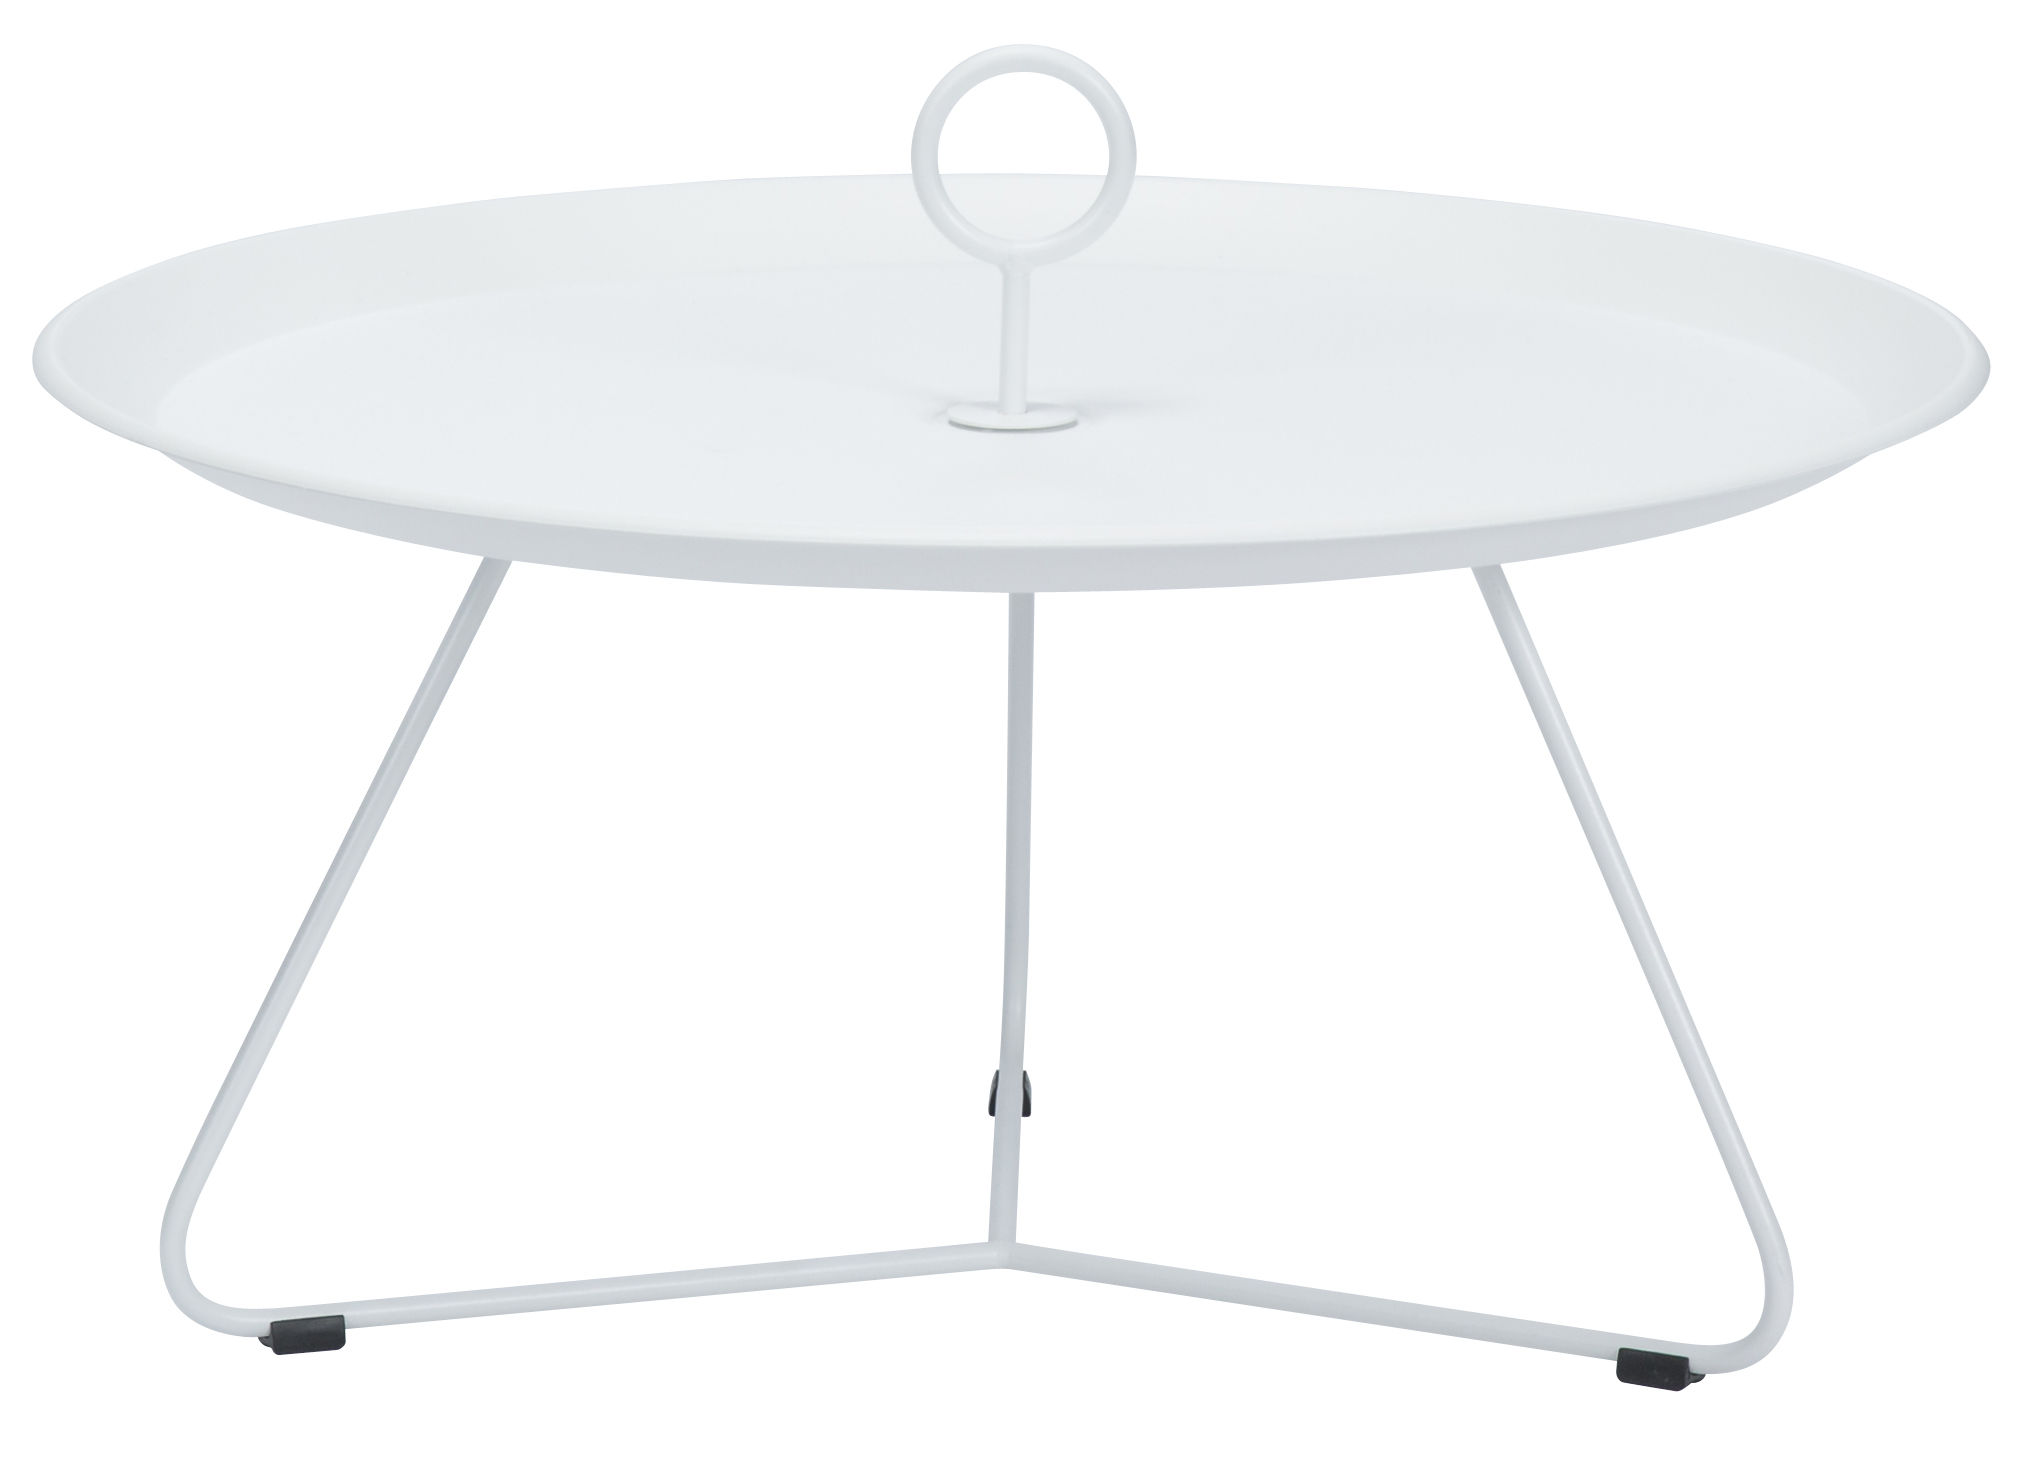 Furniture - Coffee Tables - Eyelet Large Coffee table - Ø 80 x H 35 cm by Houe - White - Epoxy lacquered metal